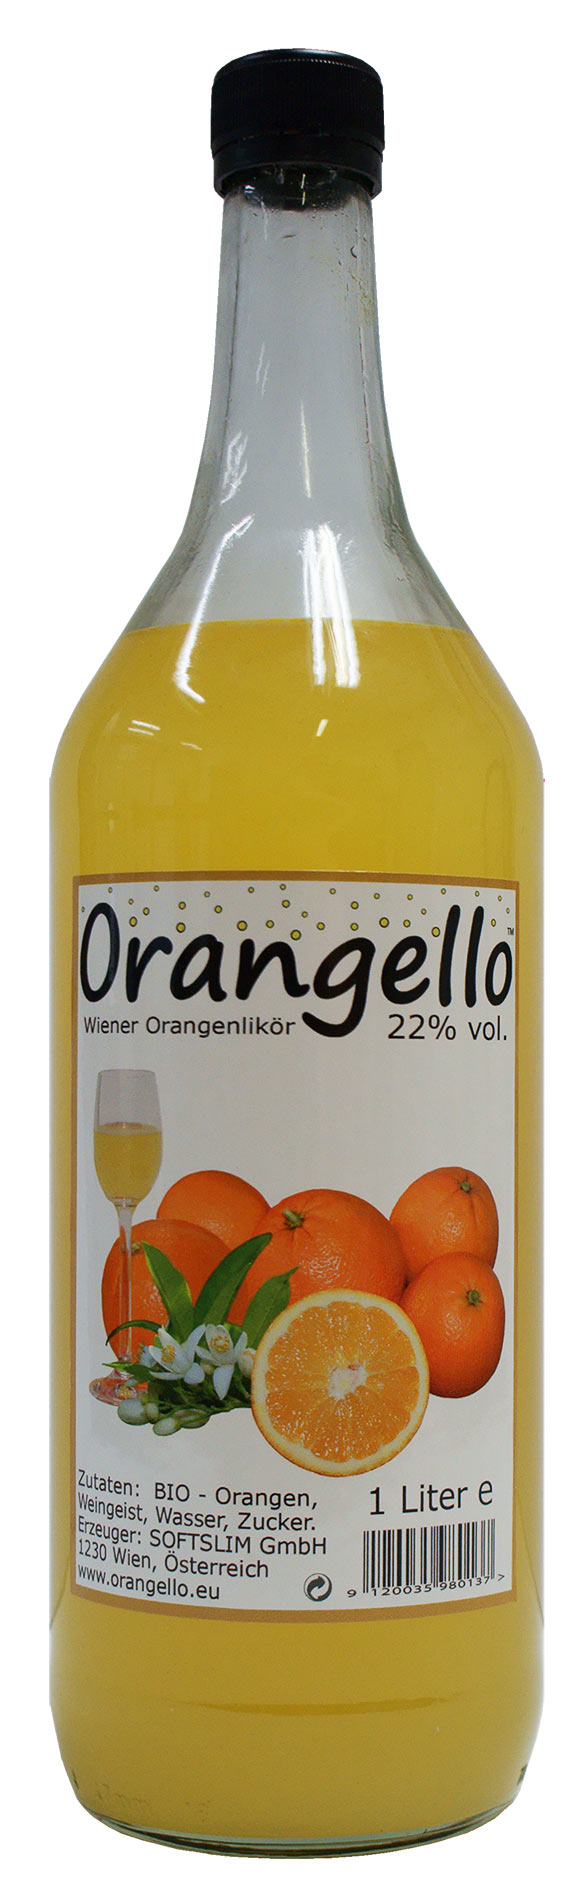 1 liter bio orangello bio orangello. Black Bedroom Furniture Sets. Home Design Ideas